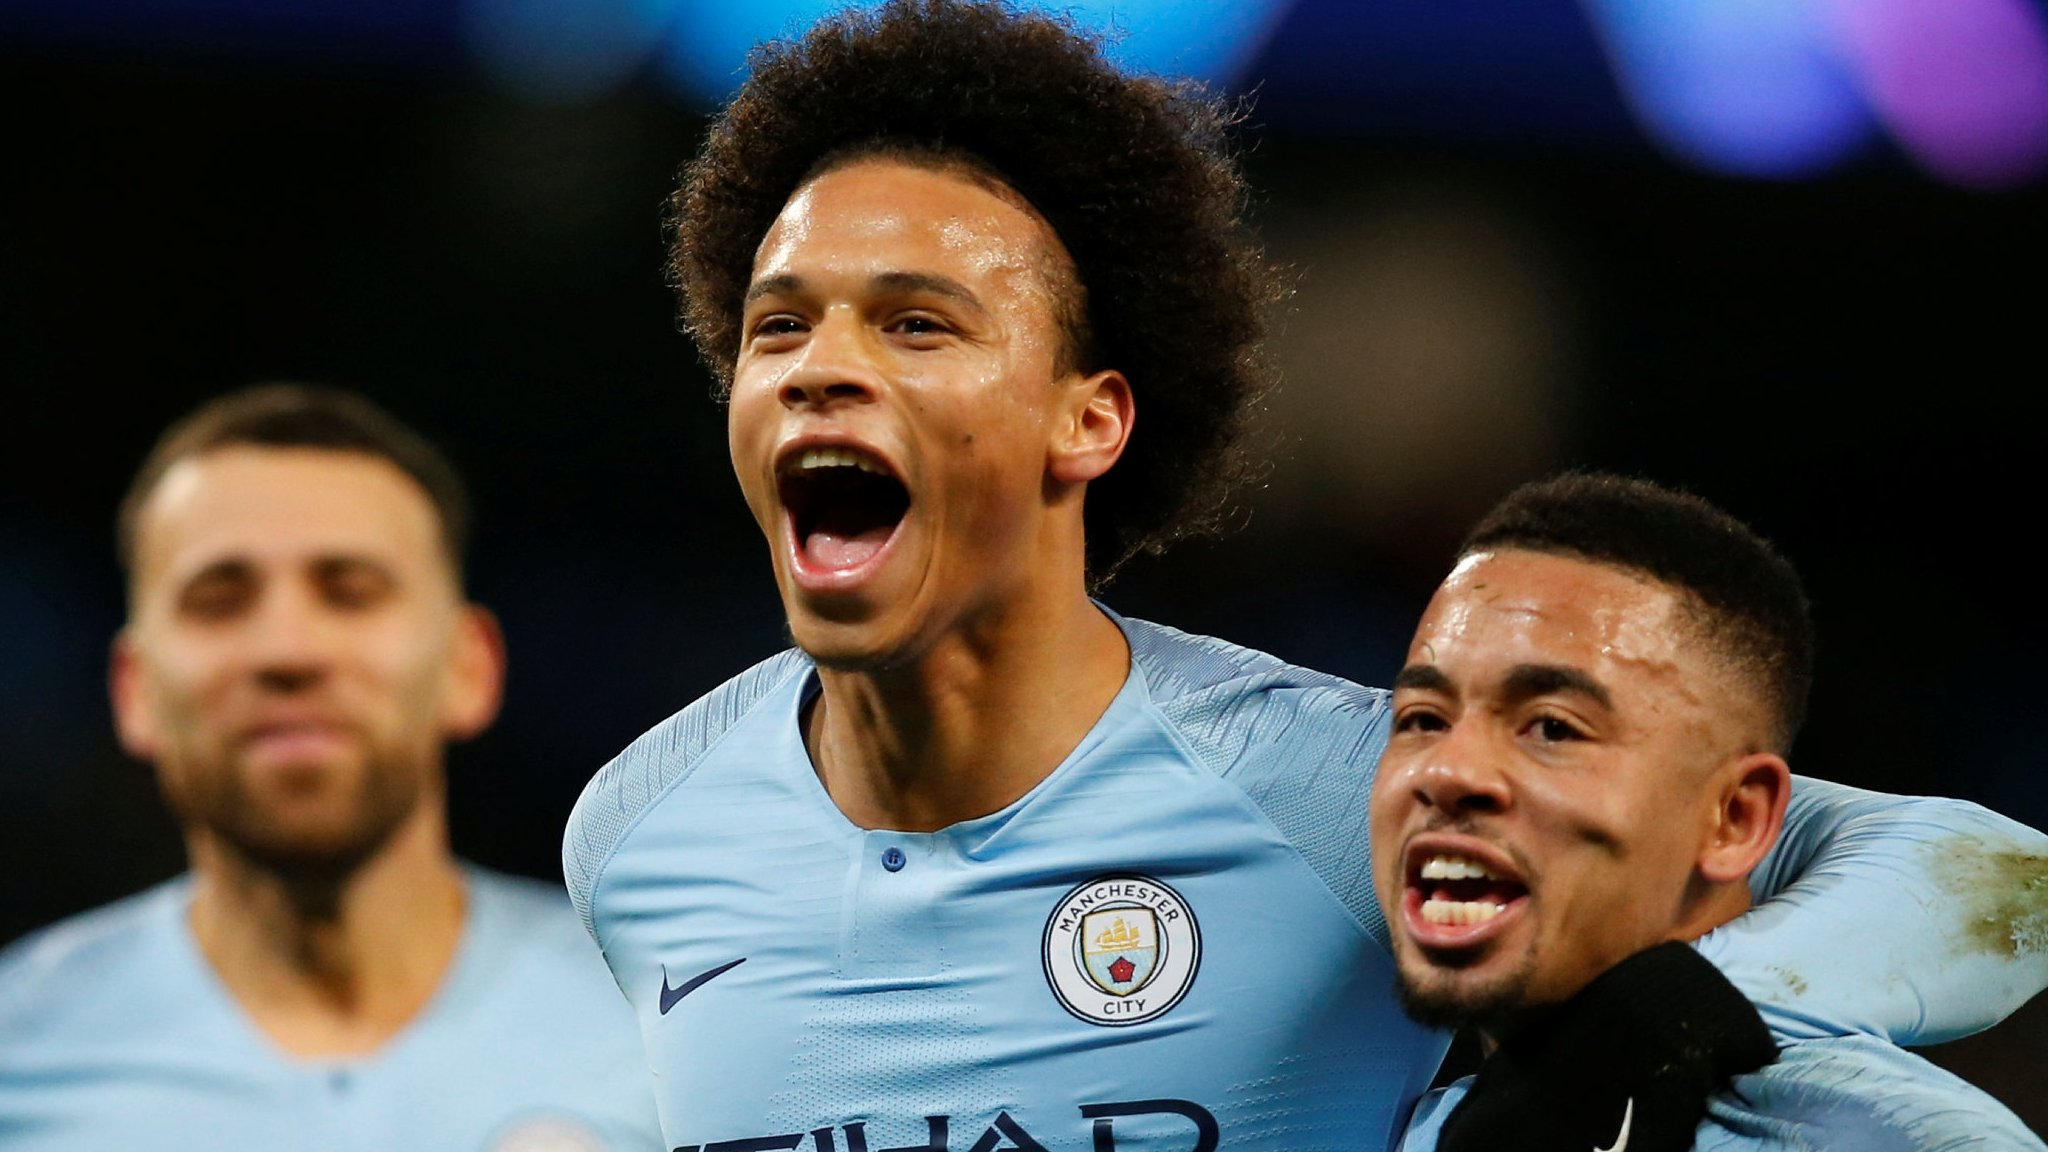 Qualification incredible success, says Guardiola after Man City top group